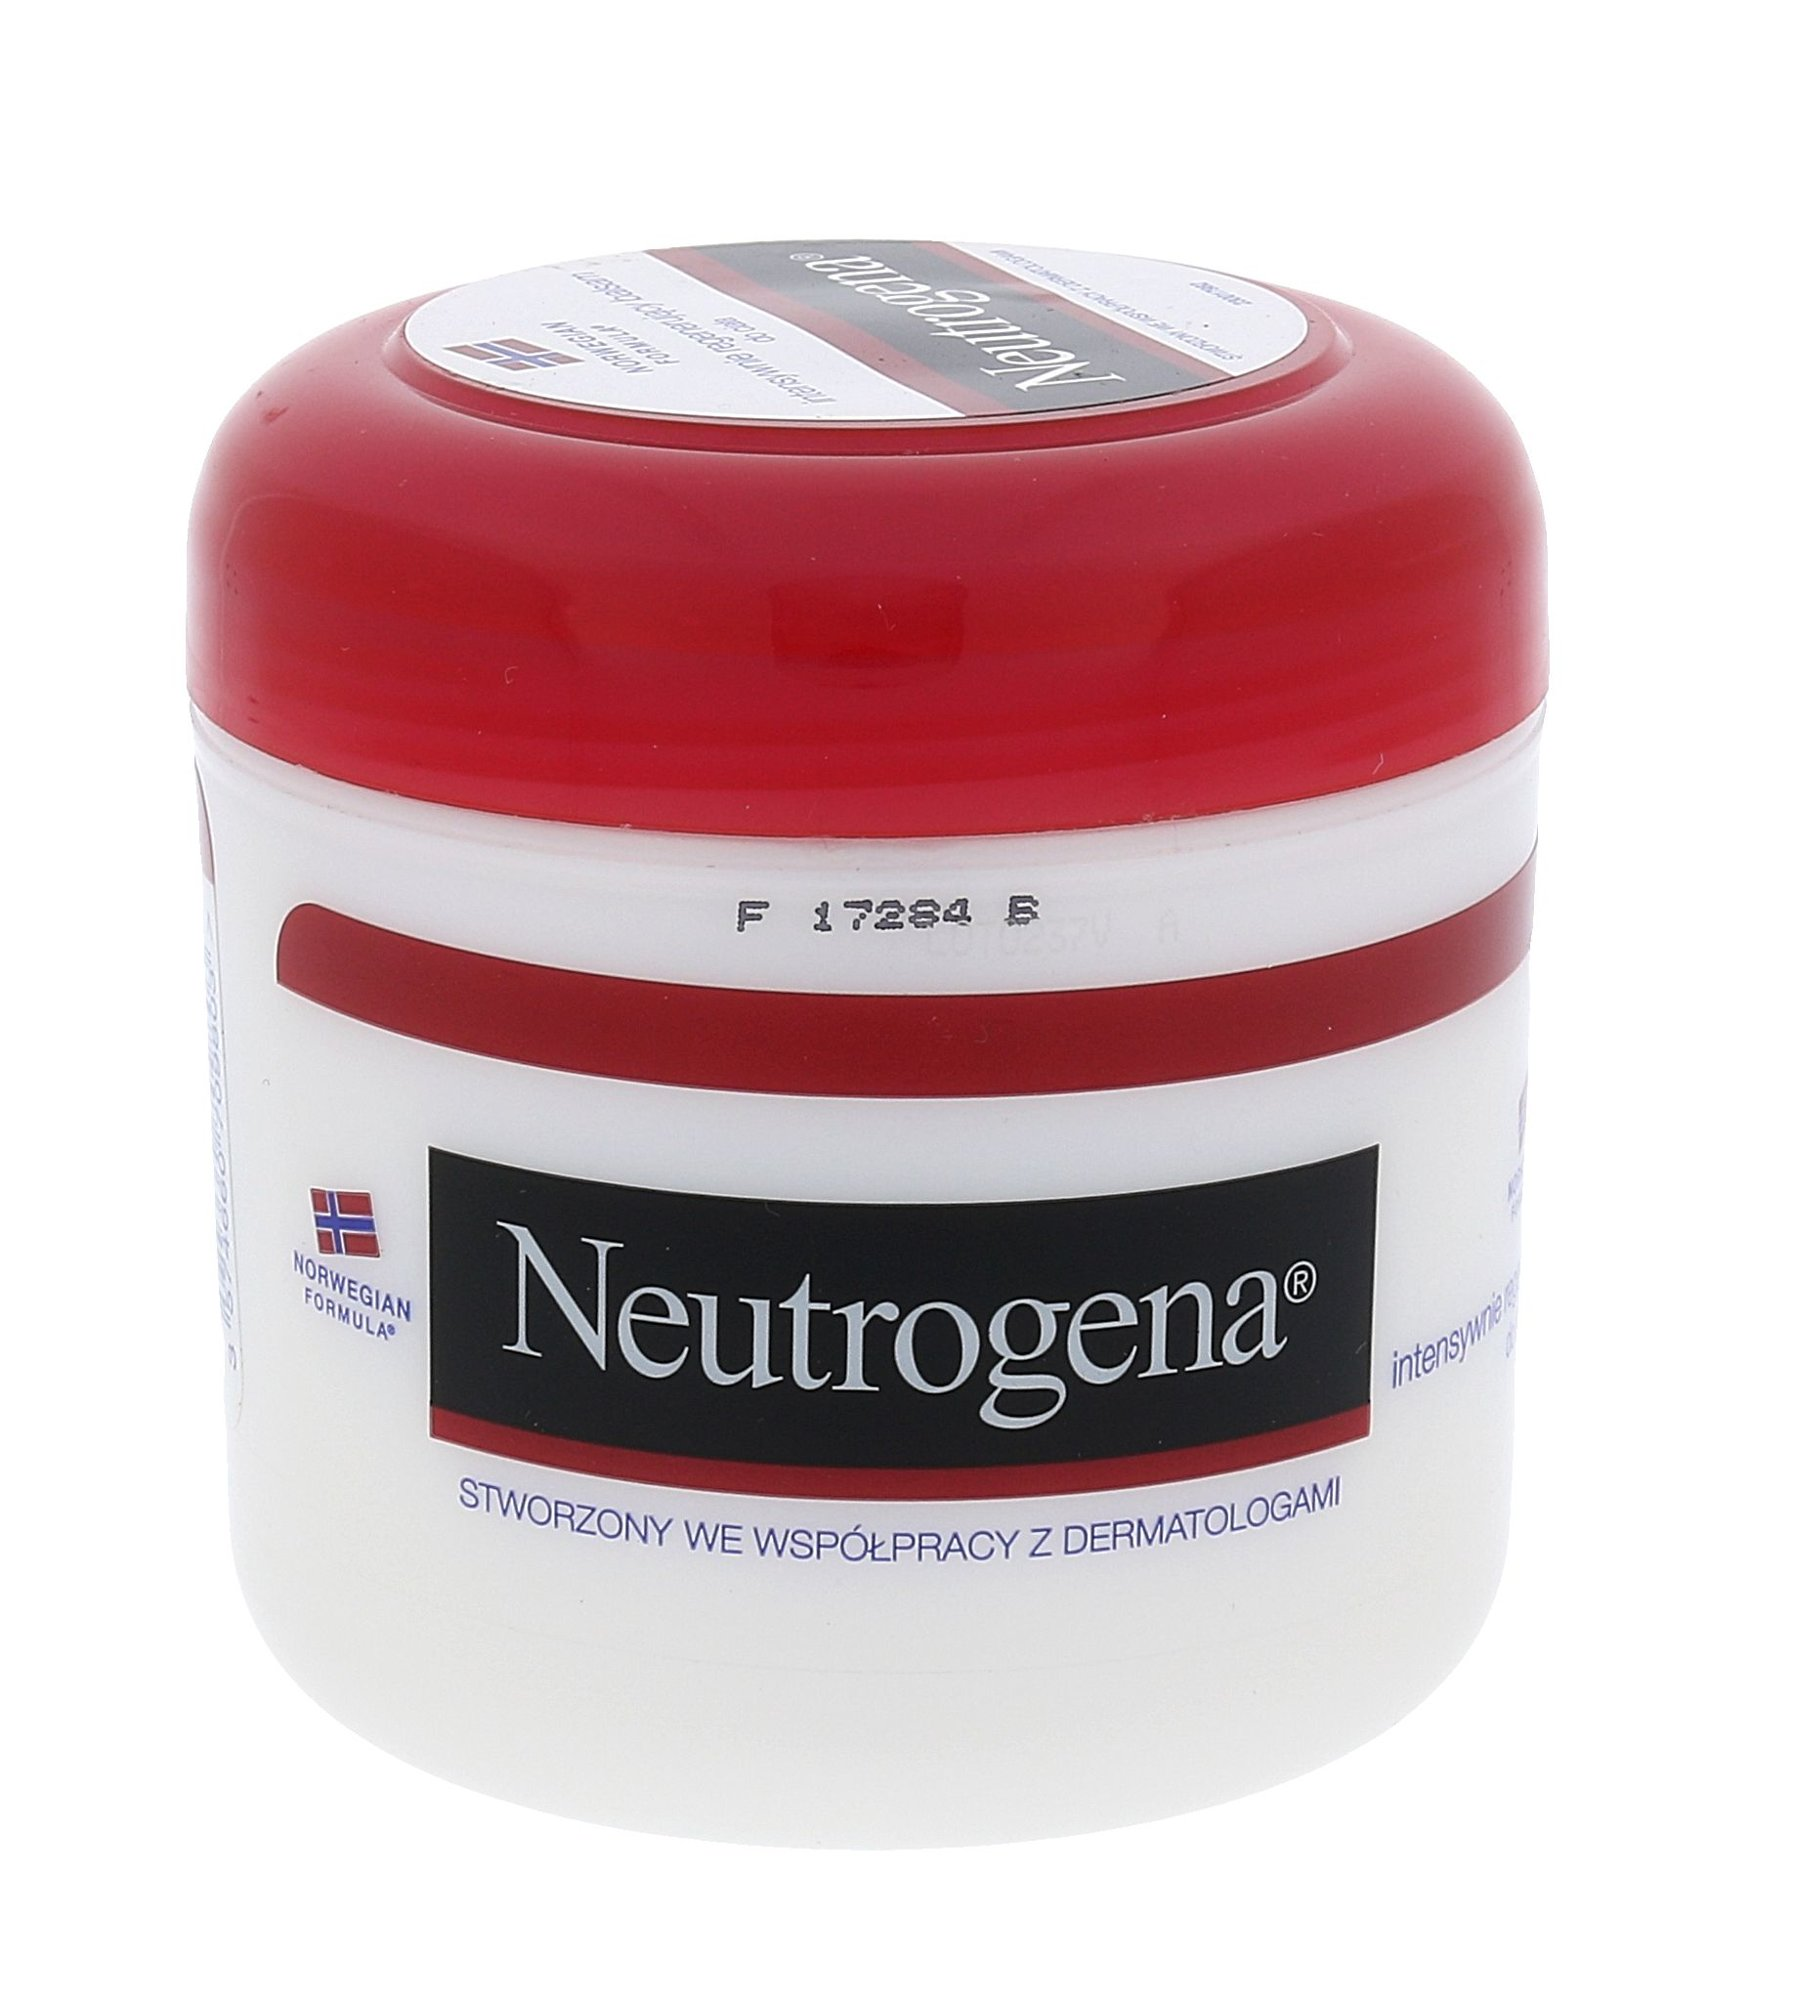 Neutrogena Norwegian Formula Cosmetic 300ml  Intense Repair